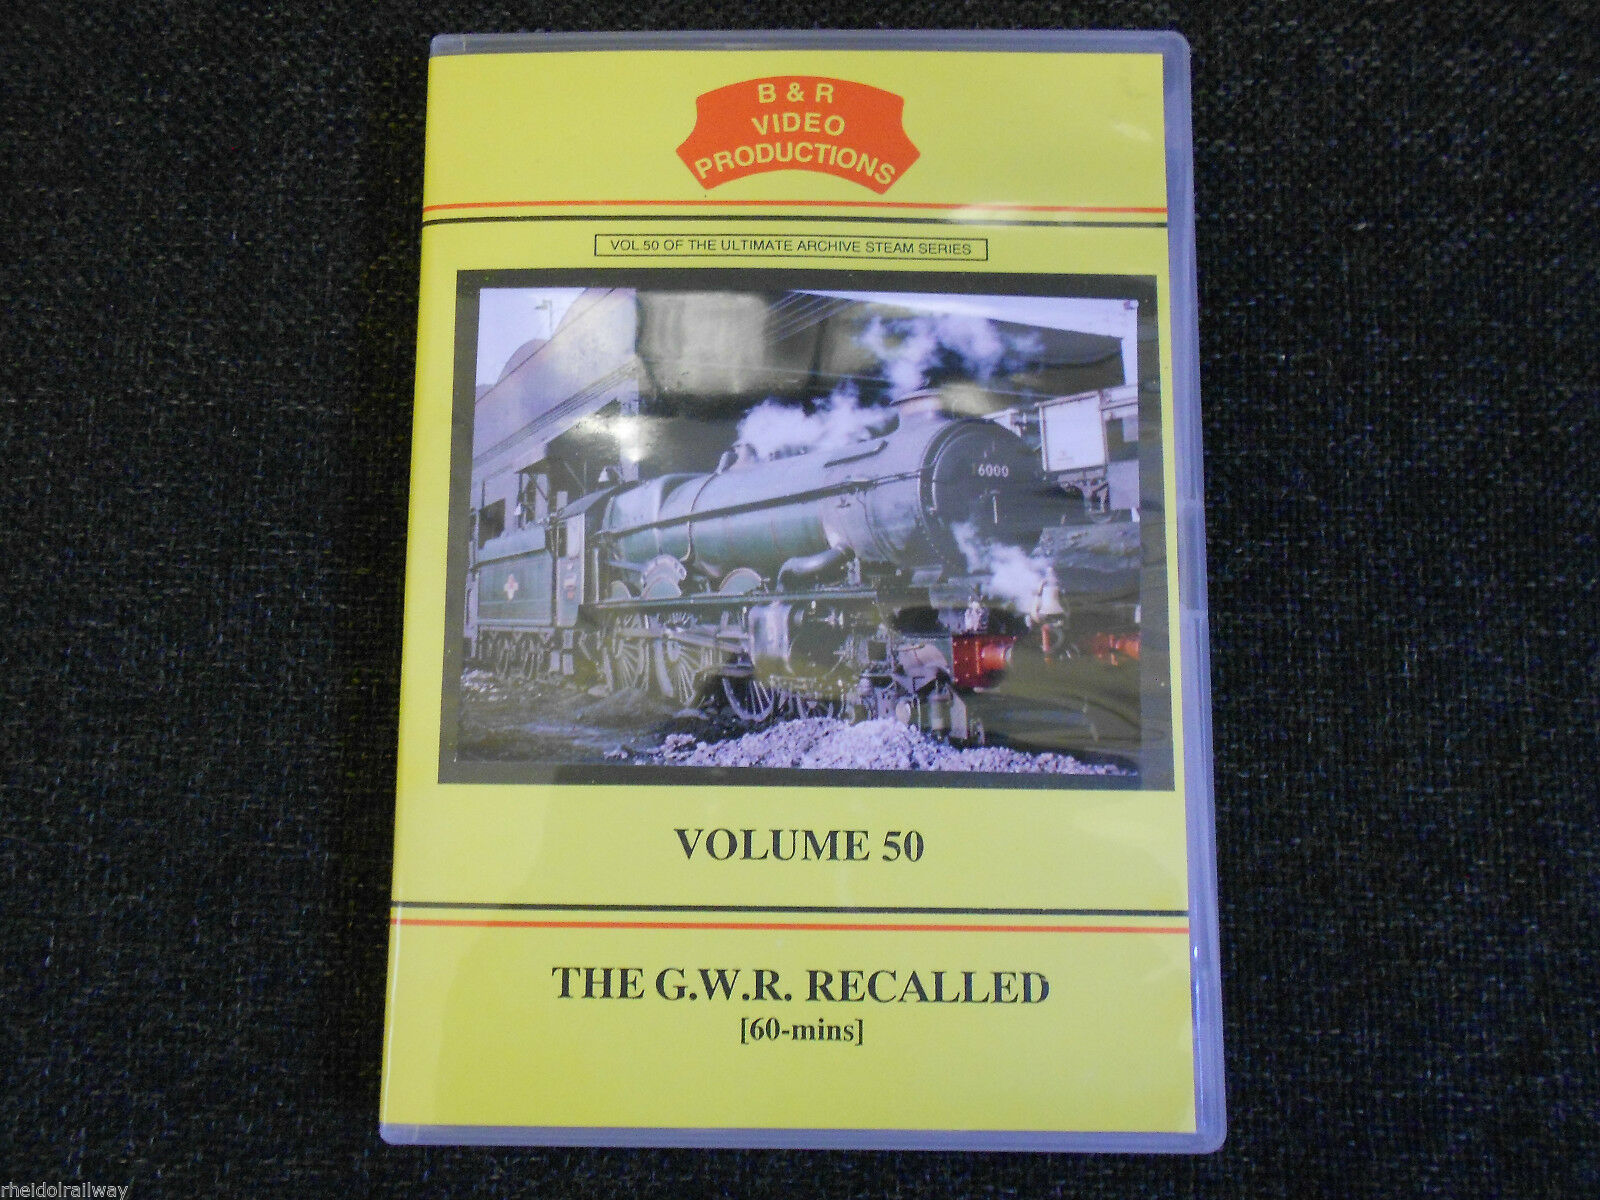 Paddington, Reading, Fishguard, Southall, The GWR Recalled B&R Vol 50 DVD - The Vale of Rheidol Railway